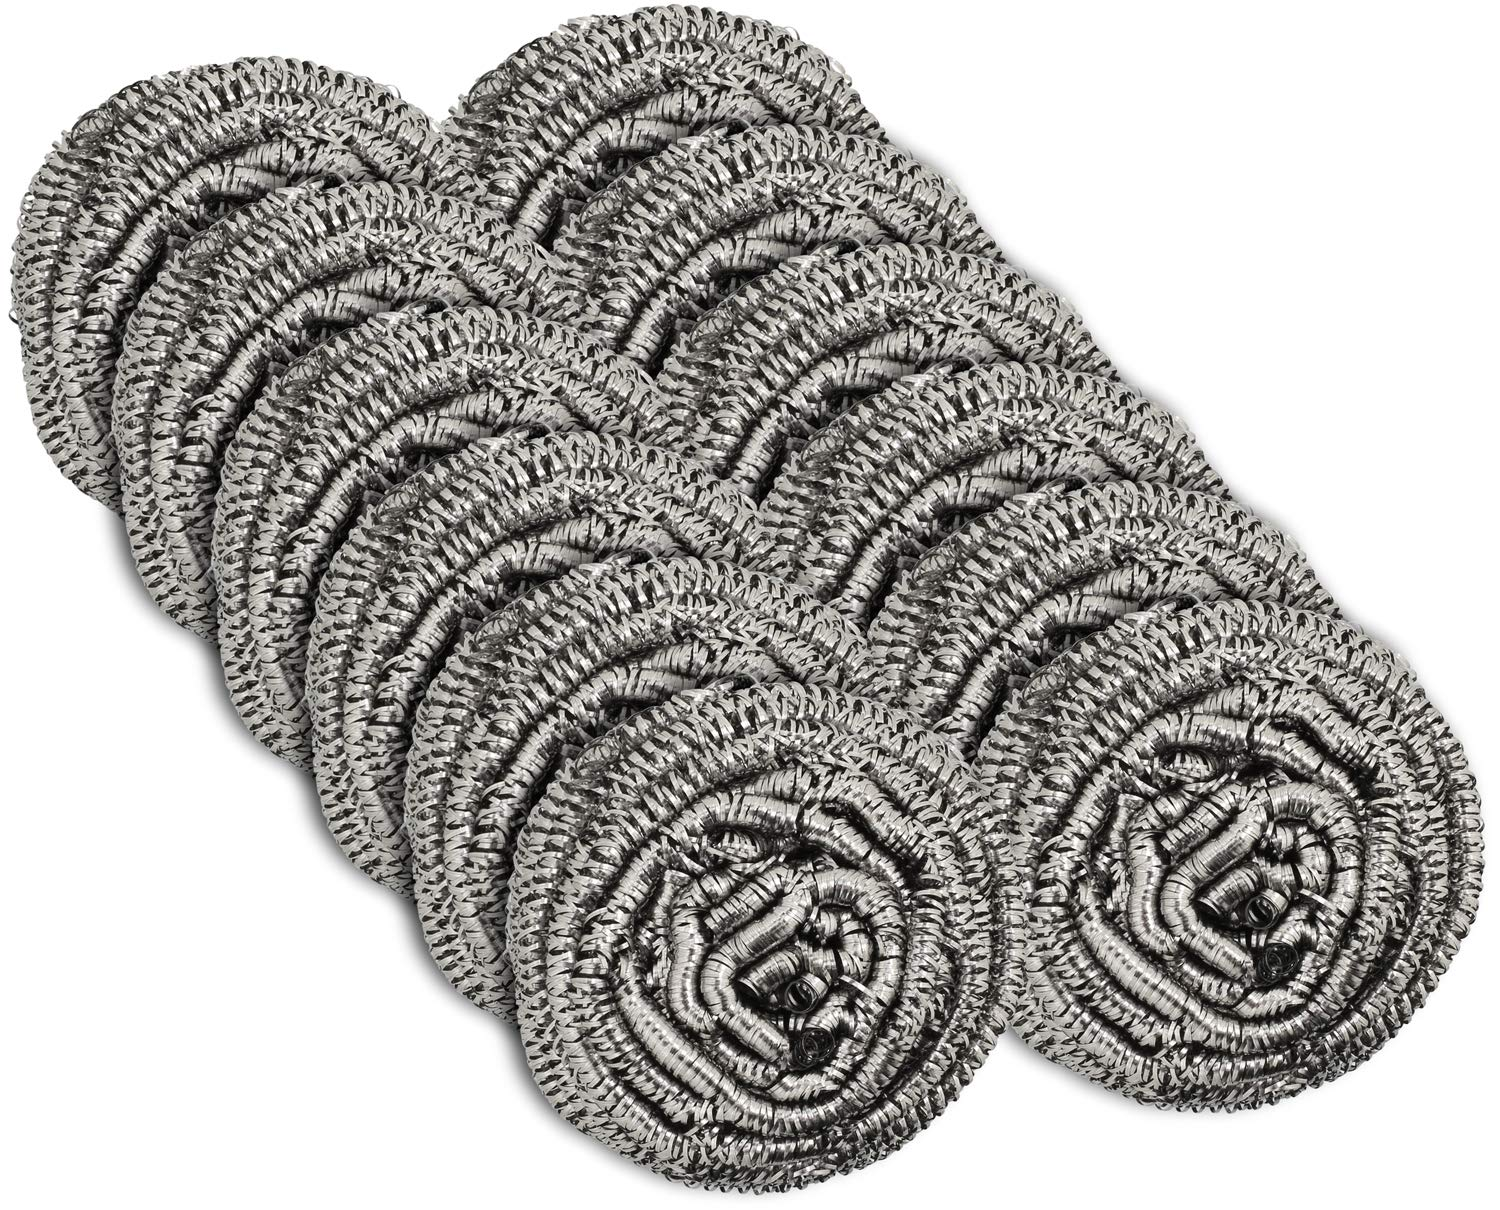 12 Pack Stainless Steel Scourers by Scrub It - Steel Wool Scrubber Pad used for Dishes, Pots, Pans, and Ovens. Easy scouring for Tough Kitchen Cleaning. by Scrub-It